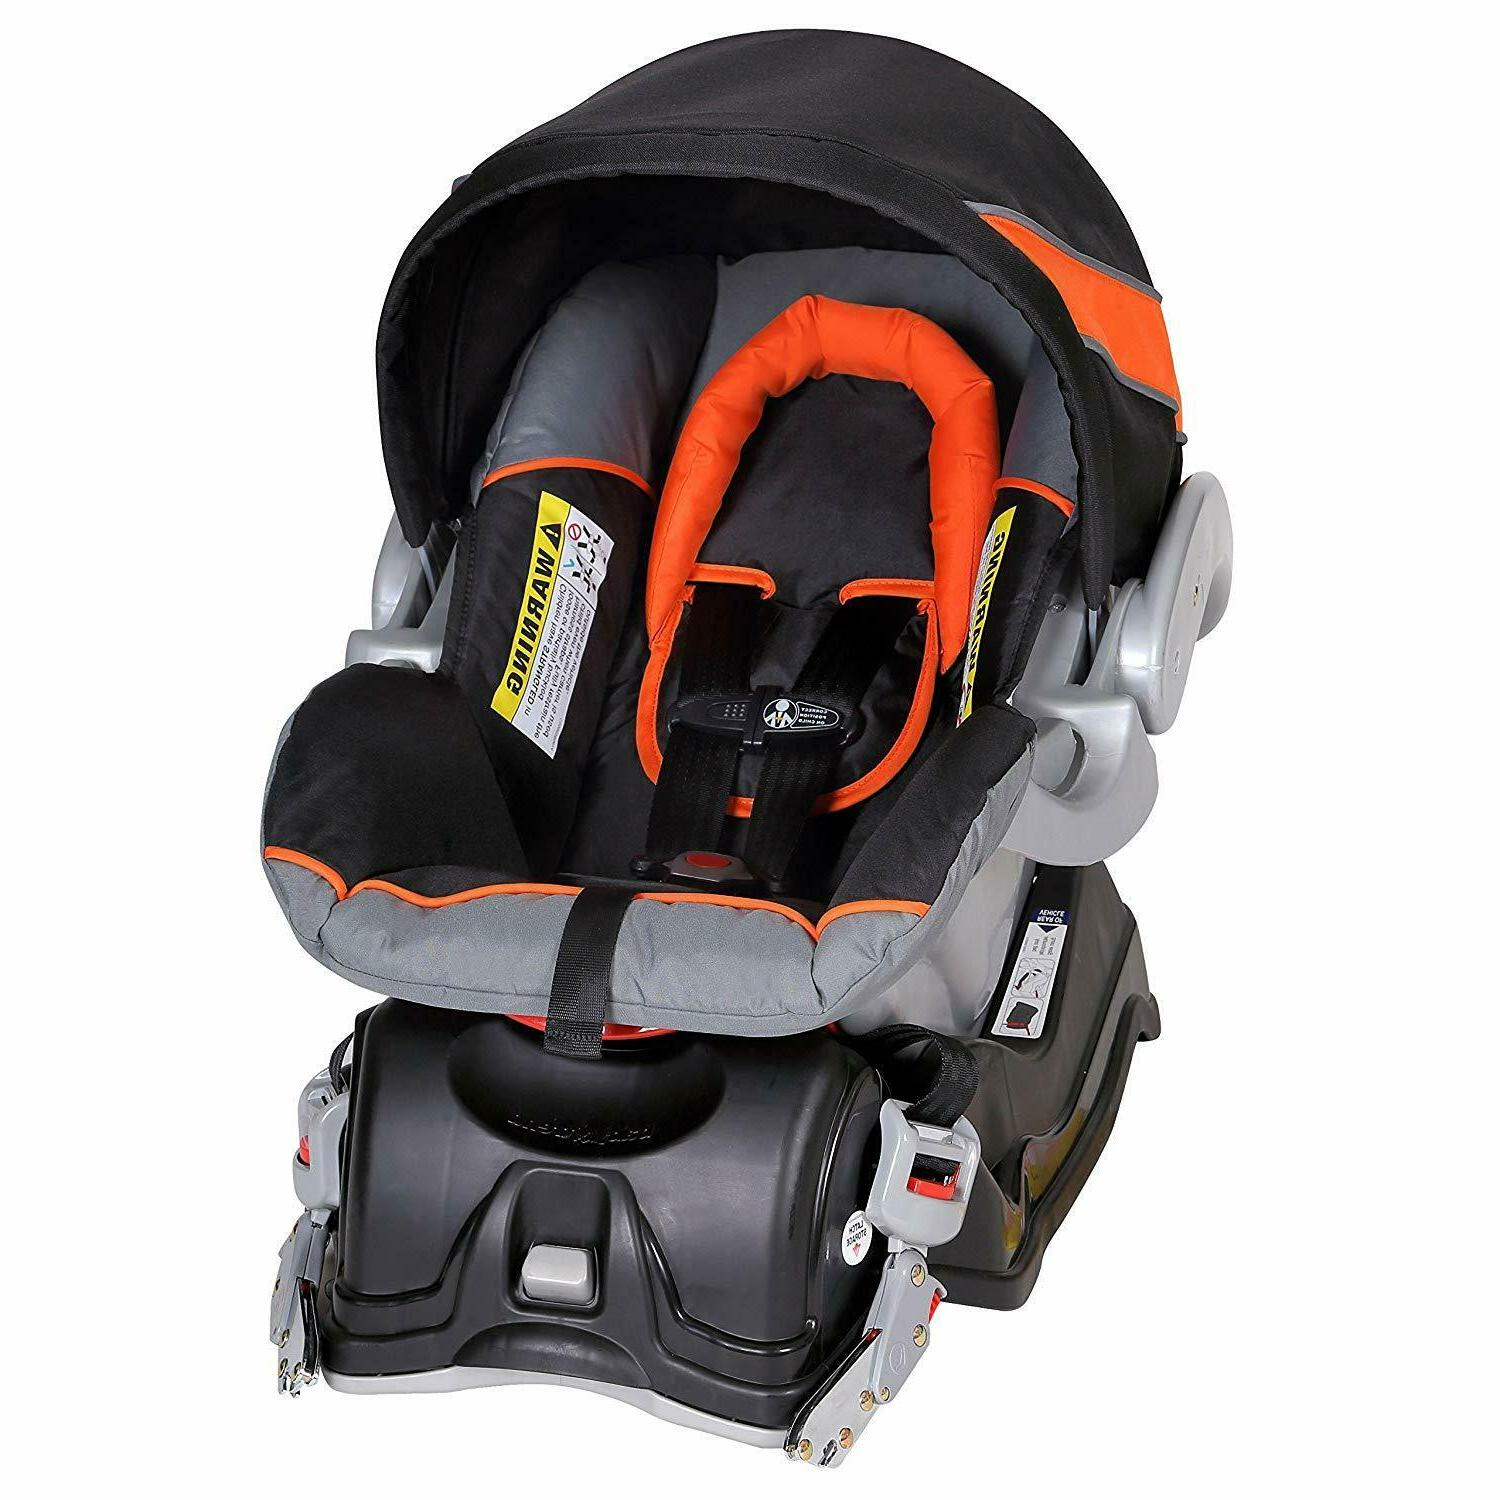 Baby Trend Infant Car Travel